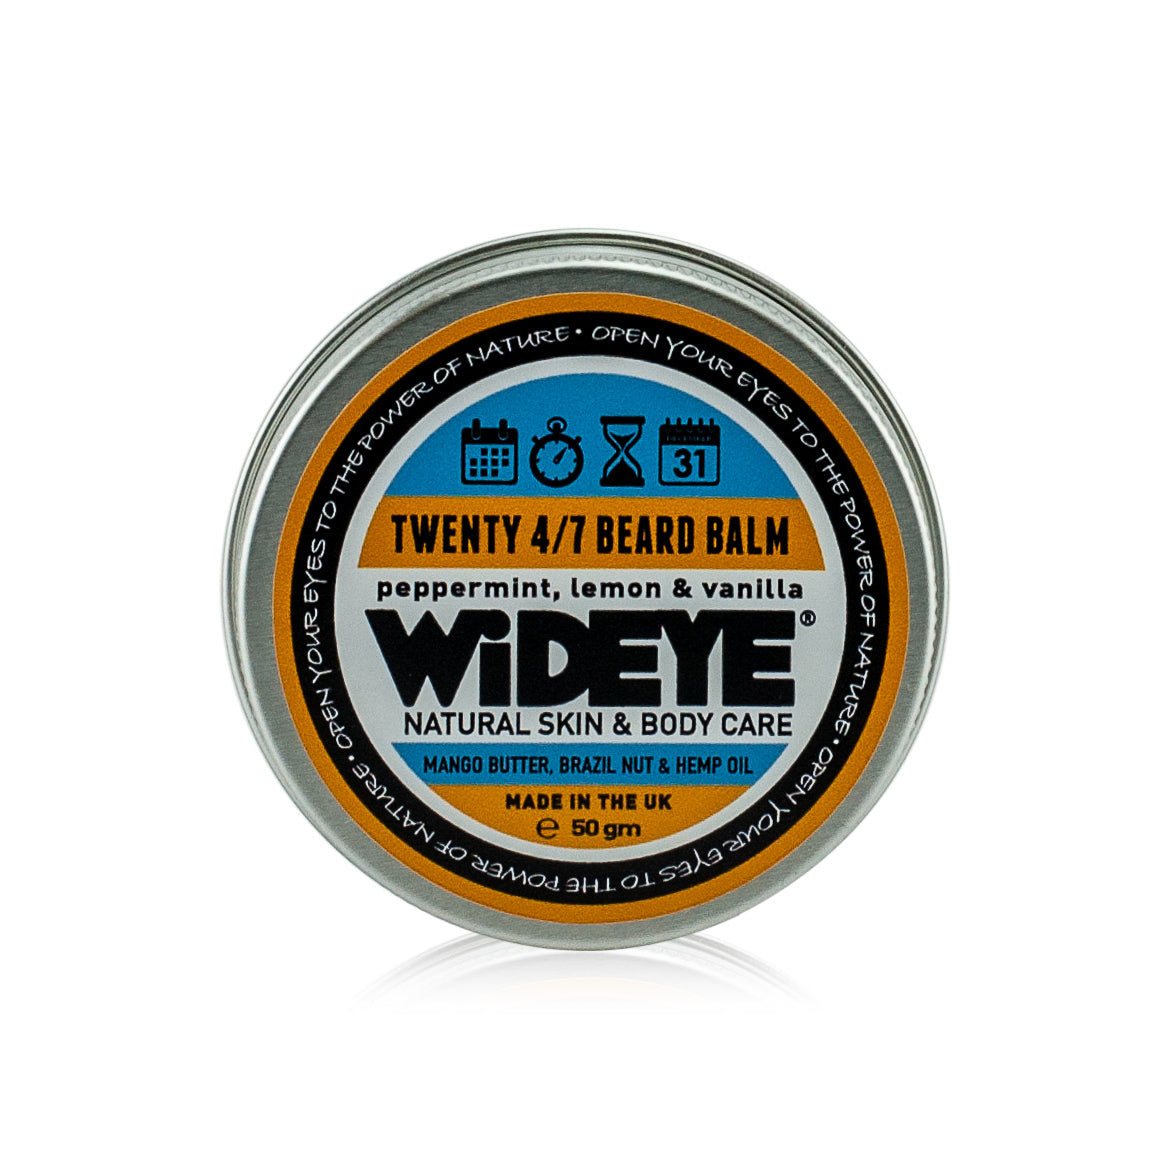 Twenty 4/7 Beard Balm 50gm